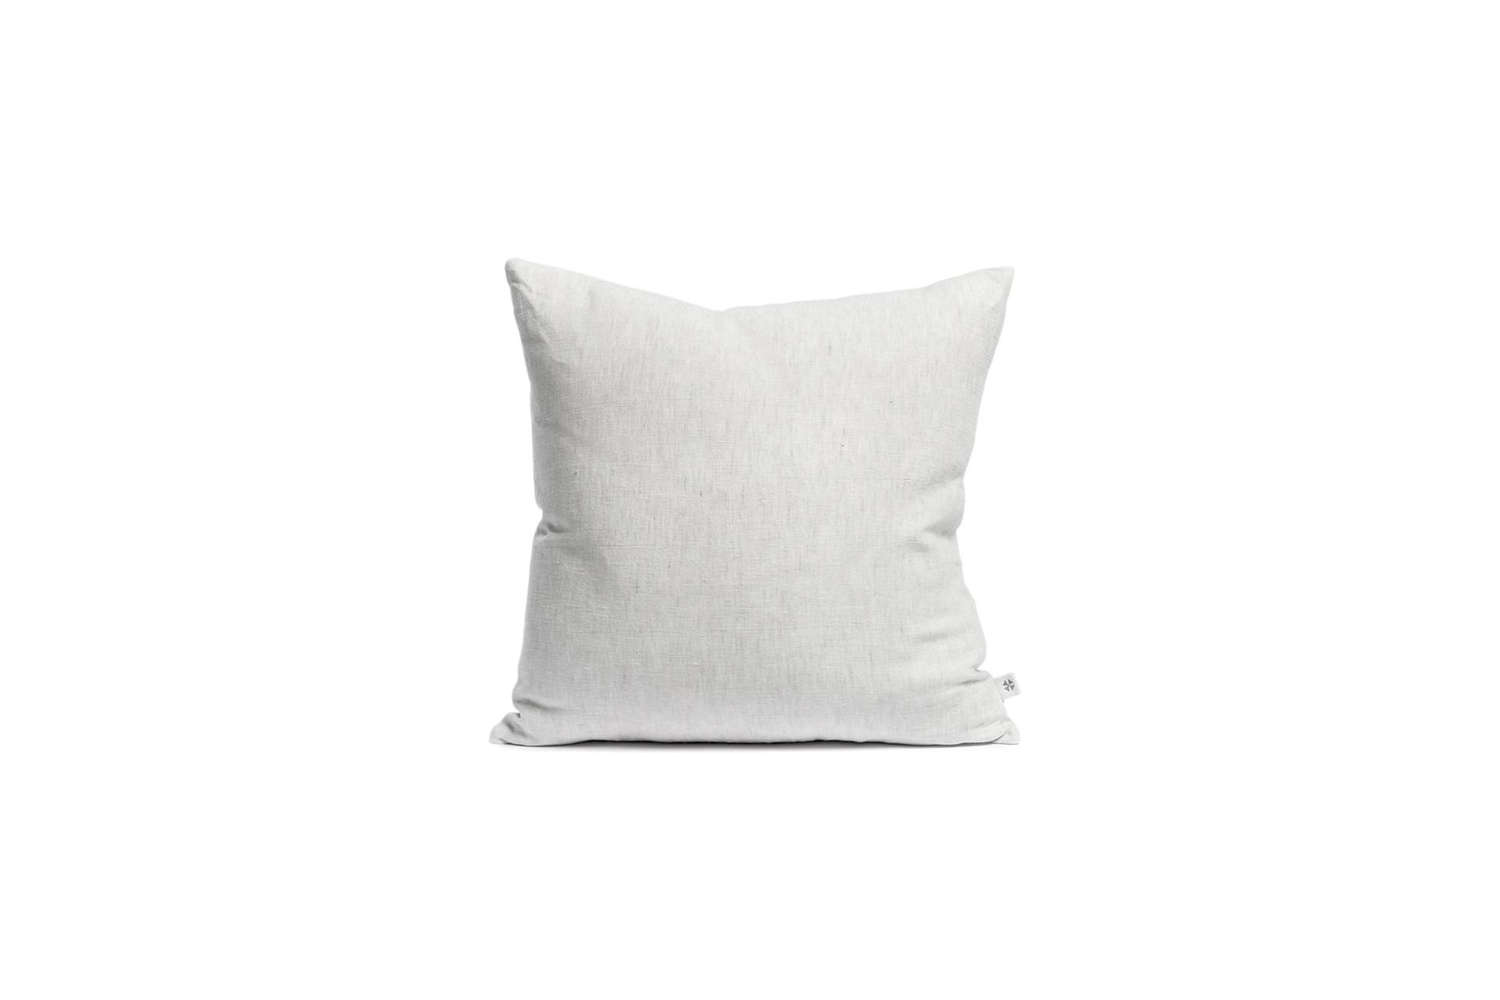 The lightest of the throw pillows is the By Mölle Misty Grey Linen Cushion; €59 with the insert at By Mölle.